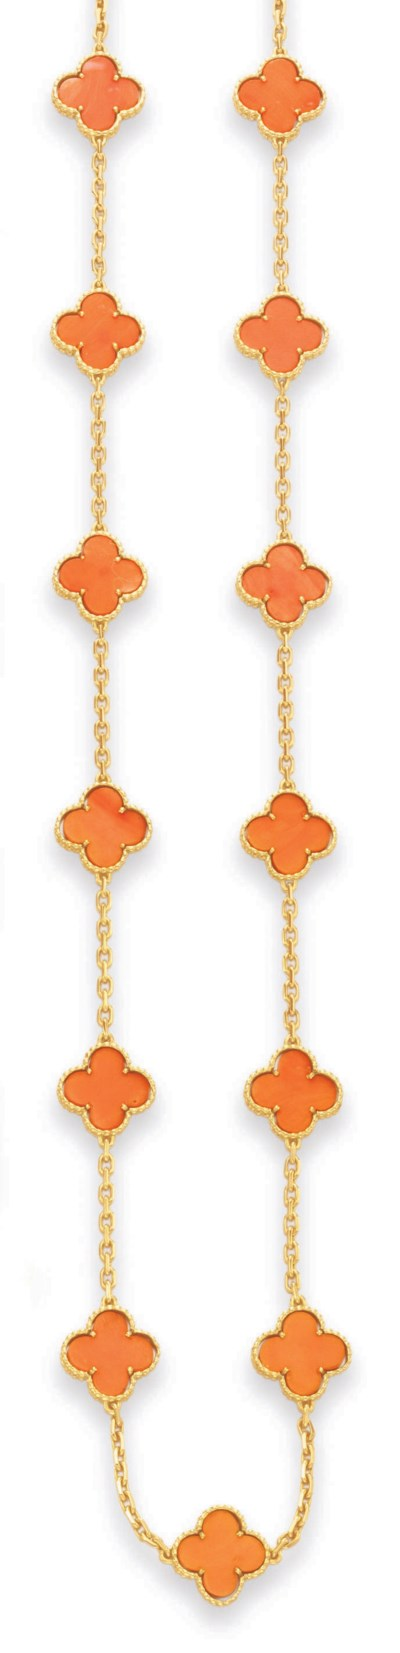 ~A CORAL AND GOLD